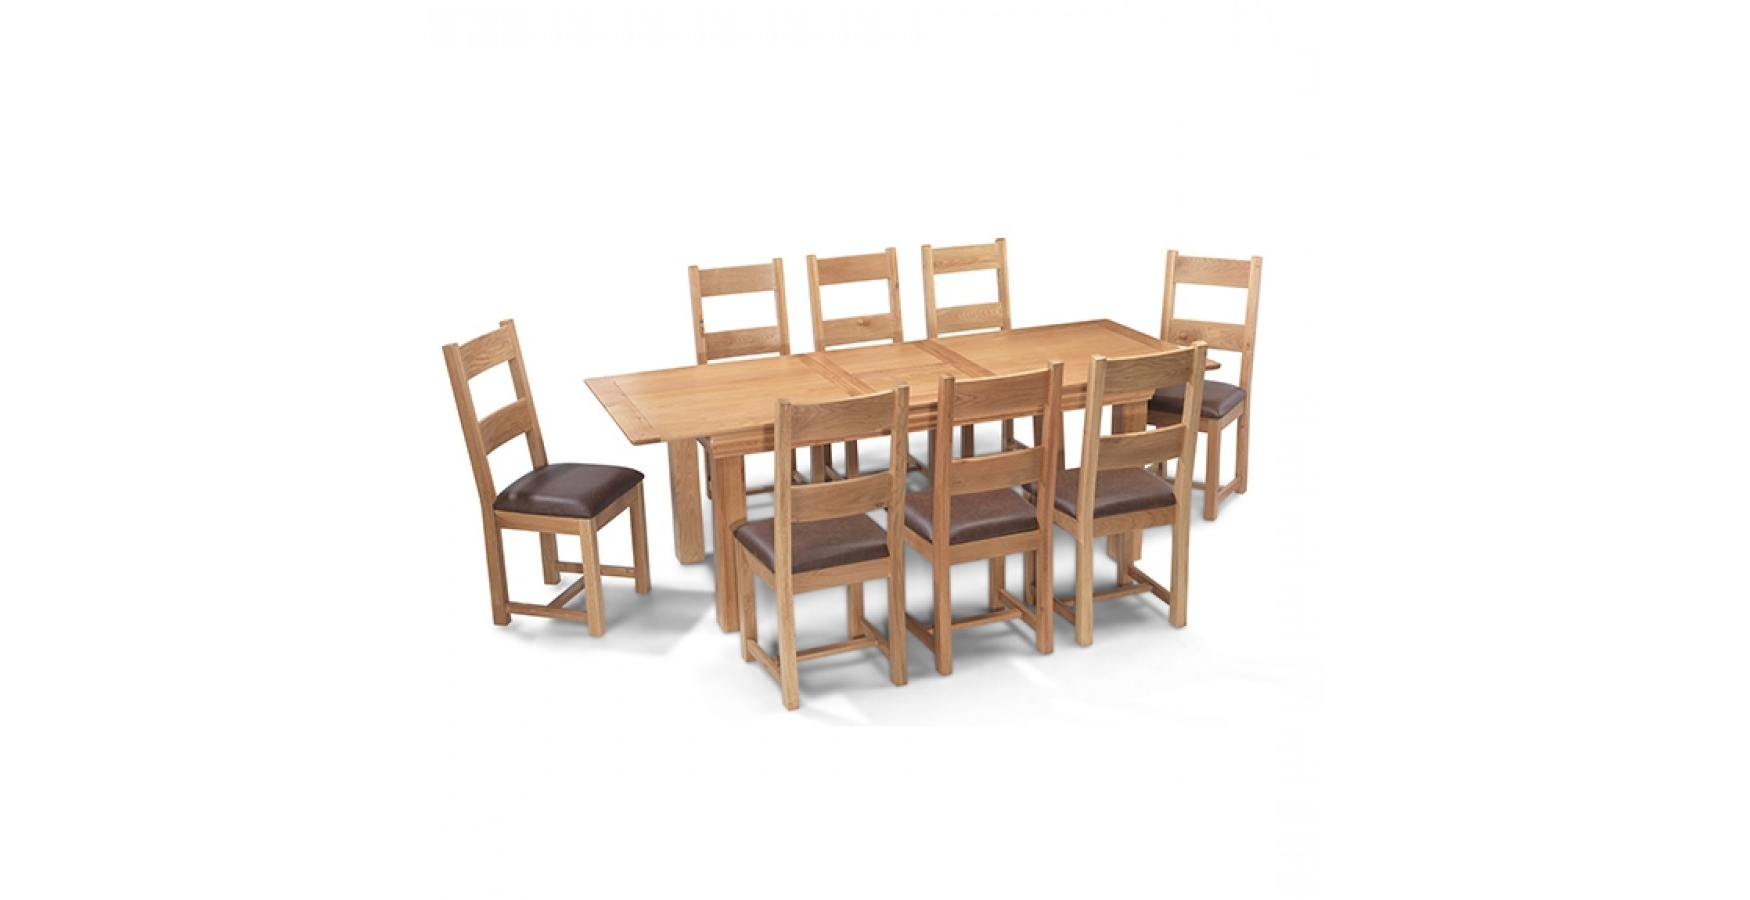 2017 Breton Oak 180 230 Cm Extending Dining Table And 8 Chairs With Regard To Extending Dining Tables And 8 Chairs (Gallery 8 of 25)